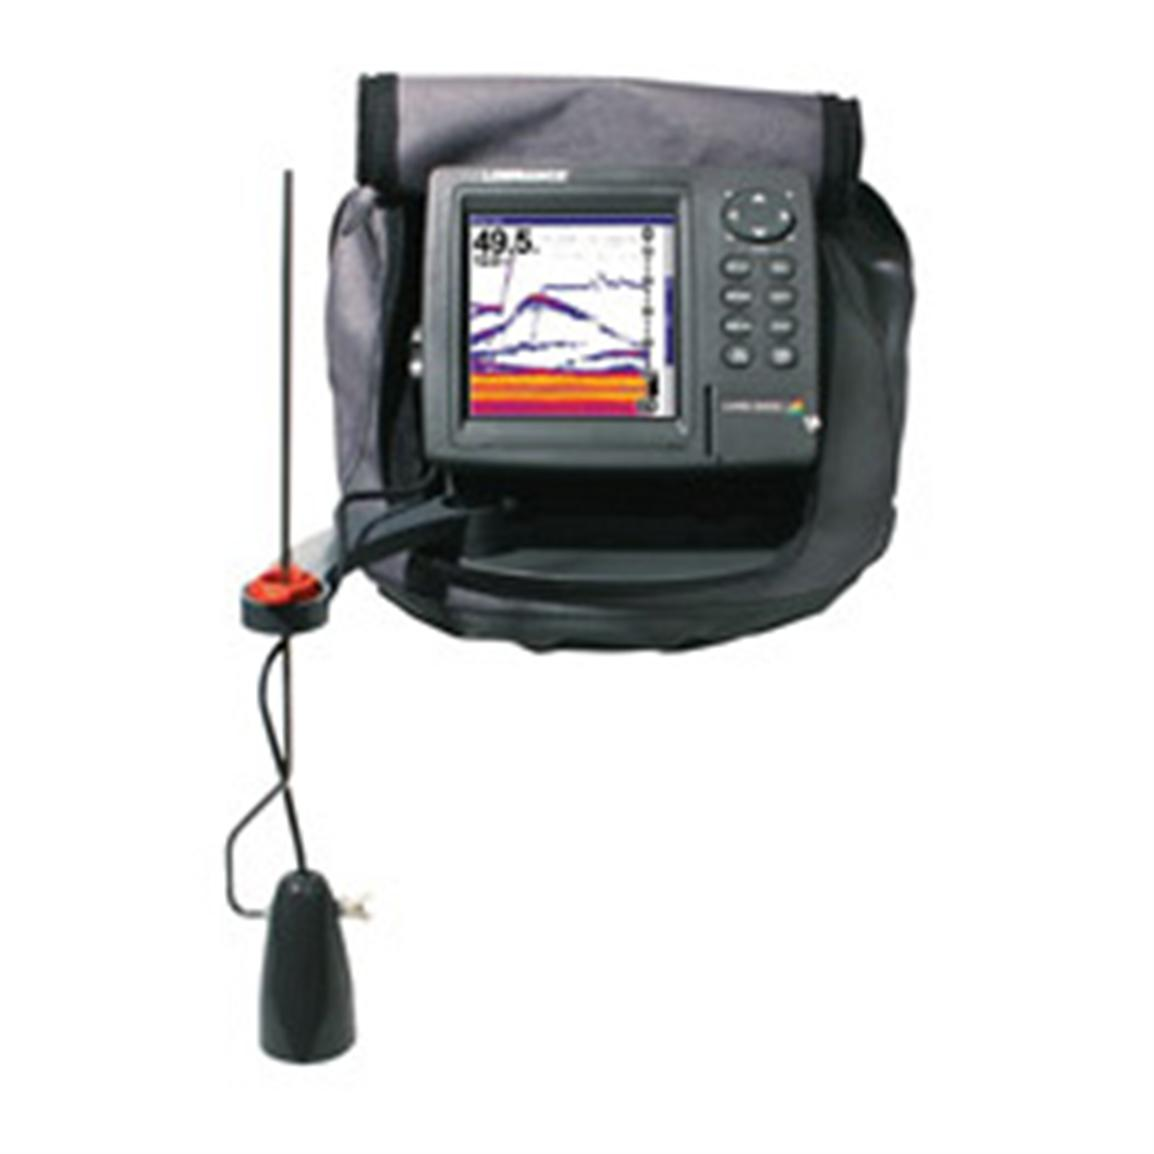 Lowrance lms 522c icemachine soar gps plotter for Ice fishing electronics